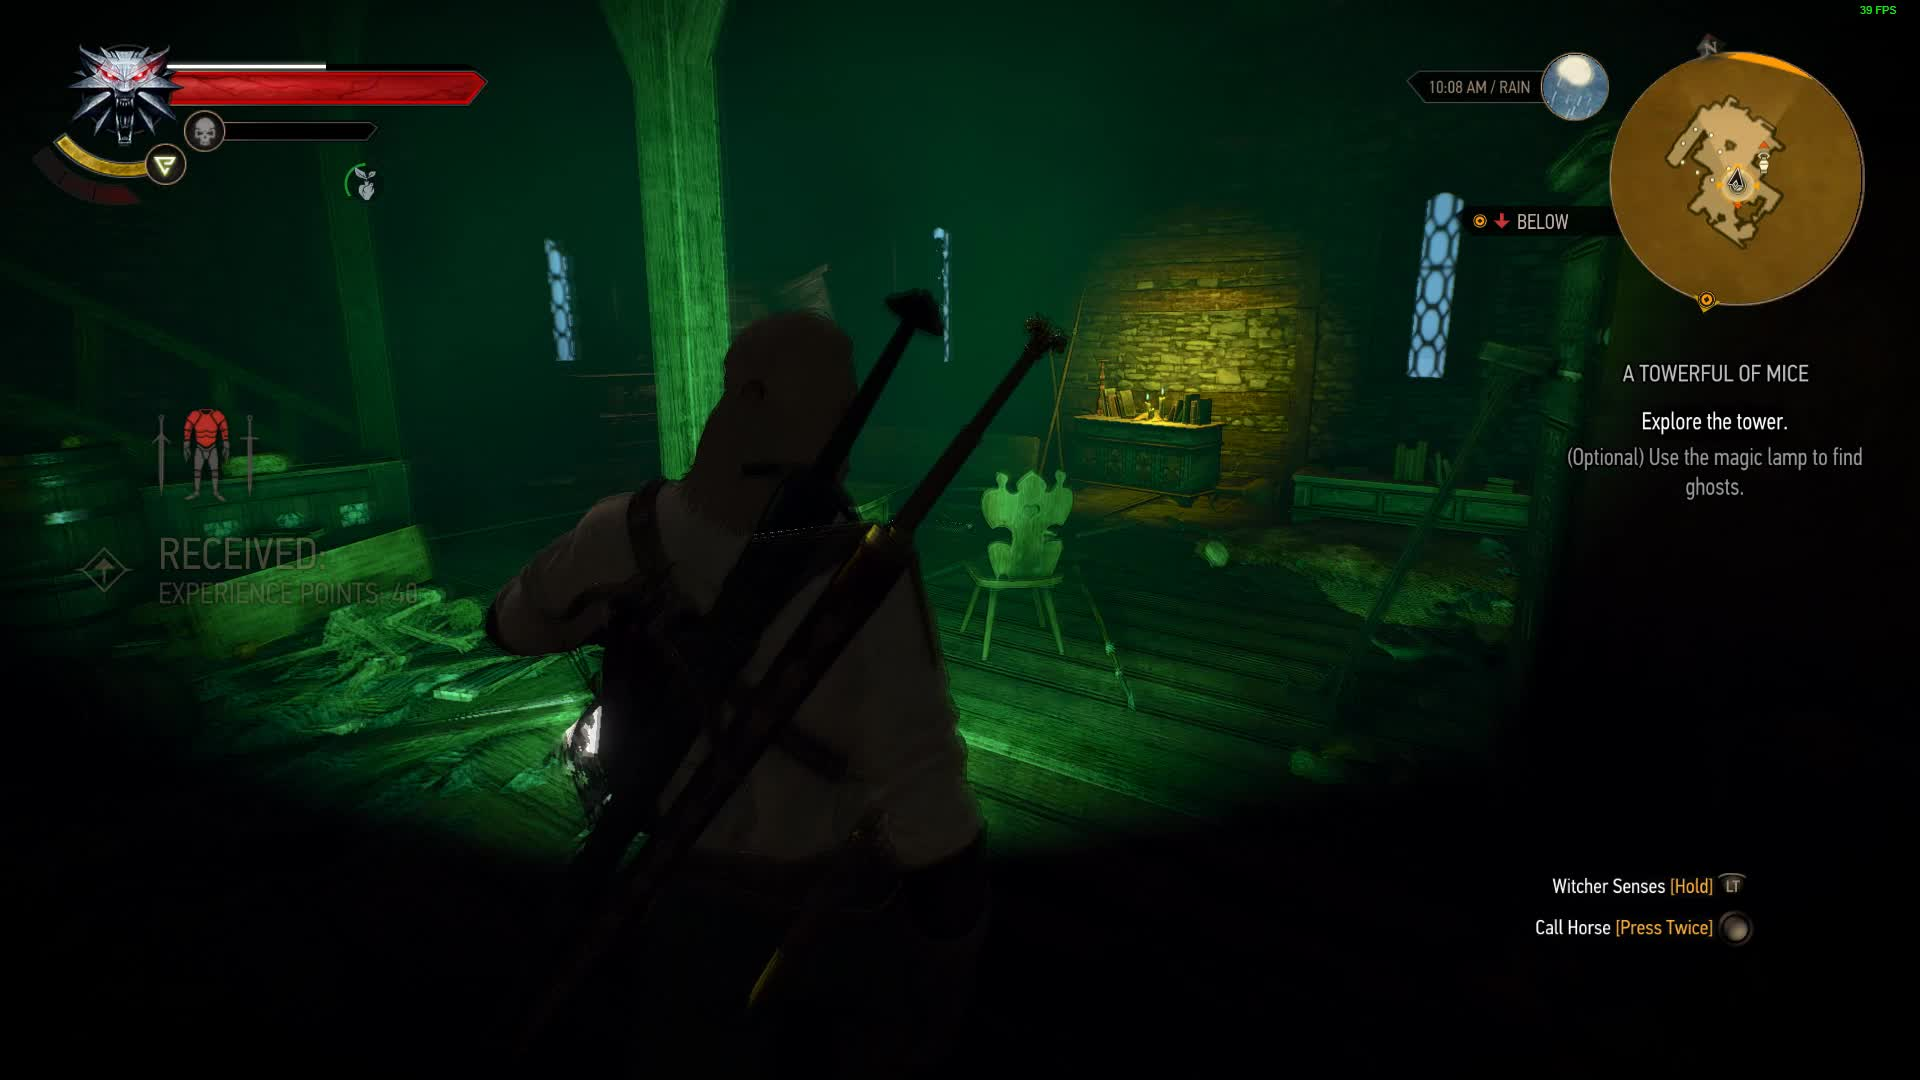 lantern, spook, tower, witcher 3, witcher 3 tower spook GIFs